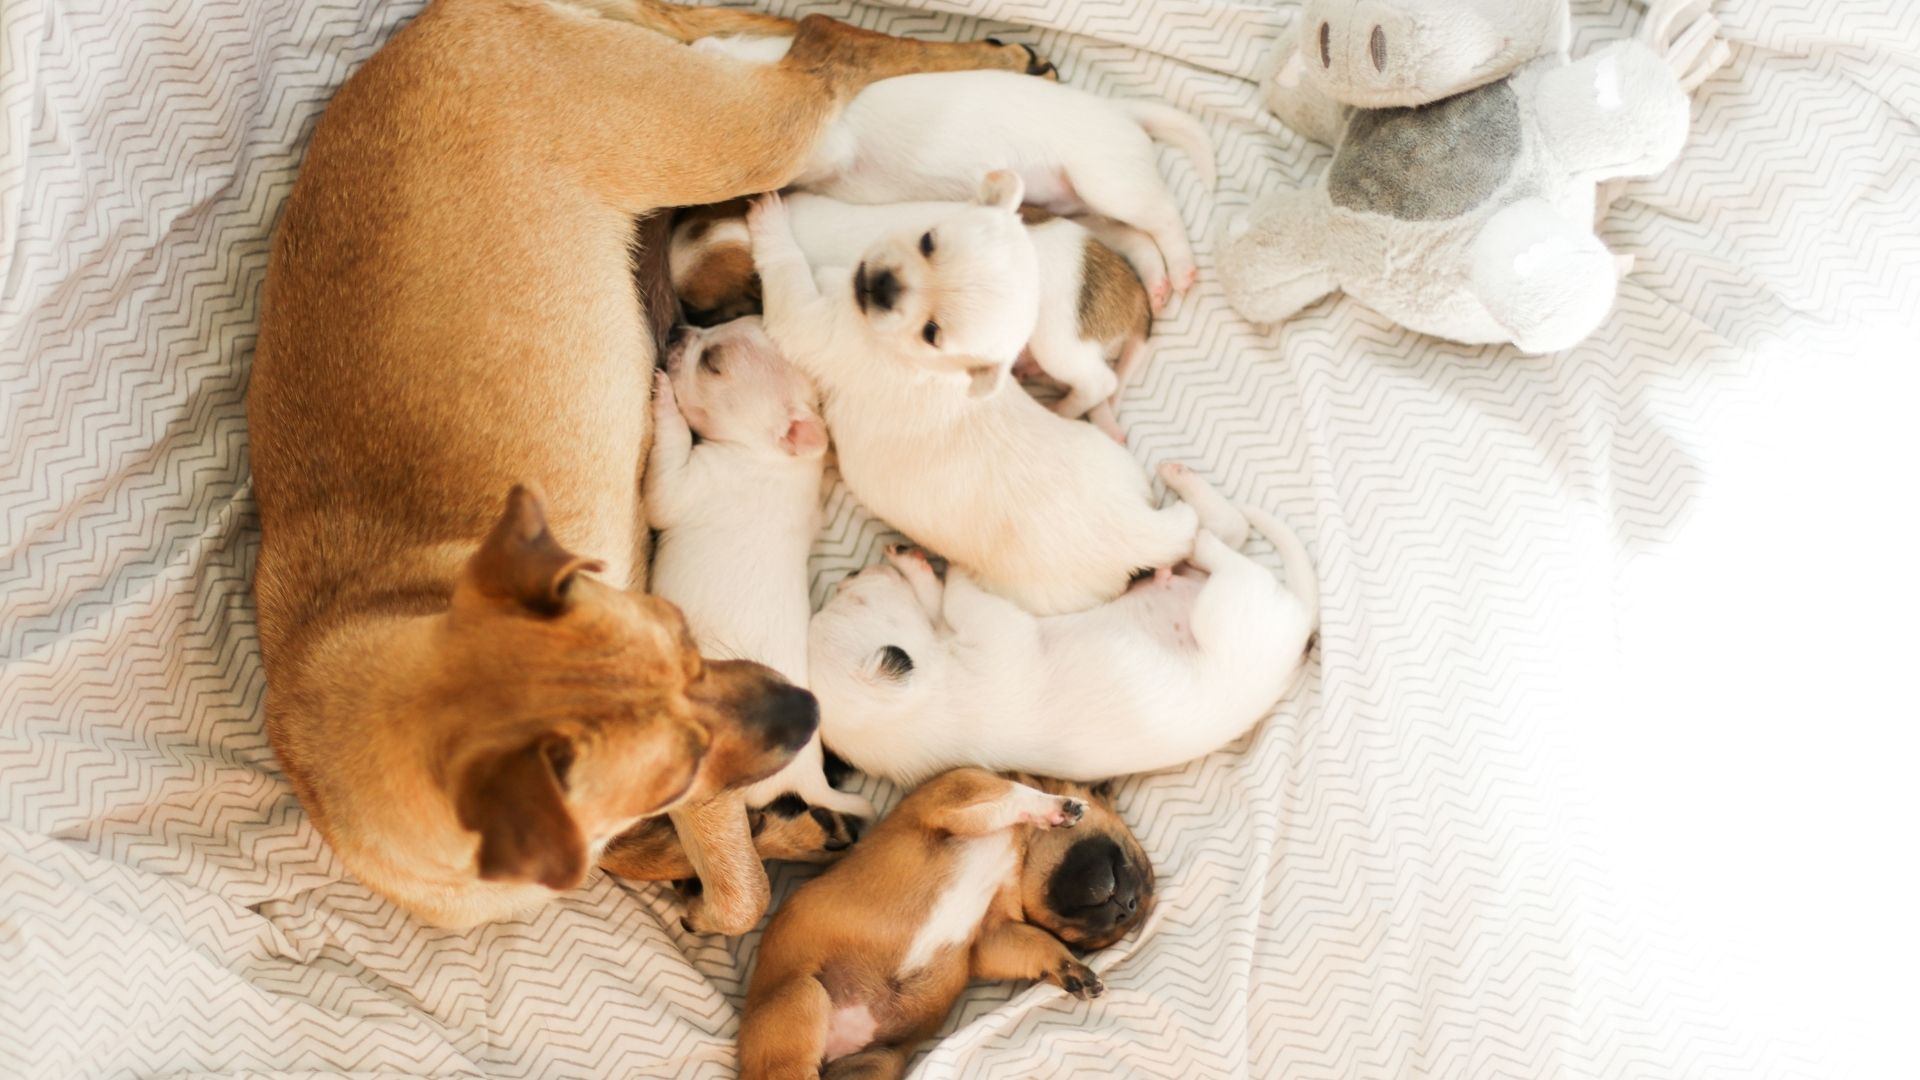 A pregnant dog generally gains weight, has enlarged mammary glands, and may experience personality changes. The only way to be...